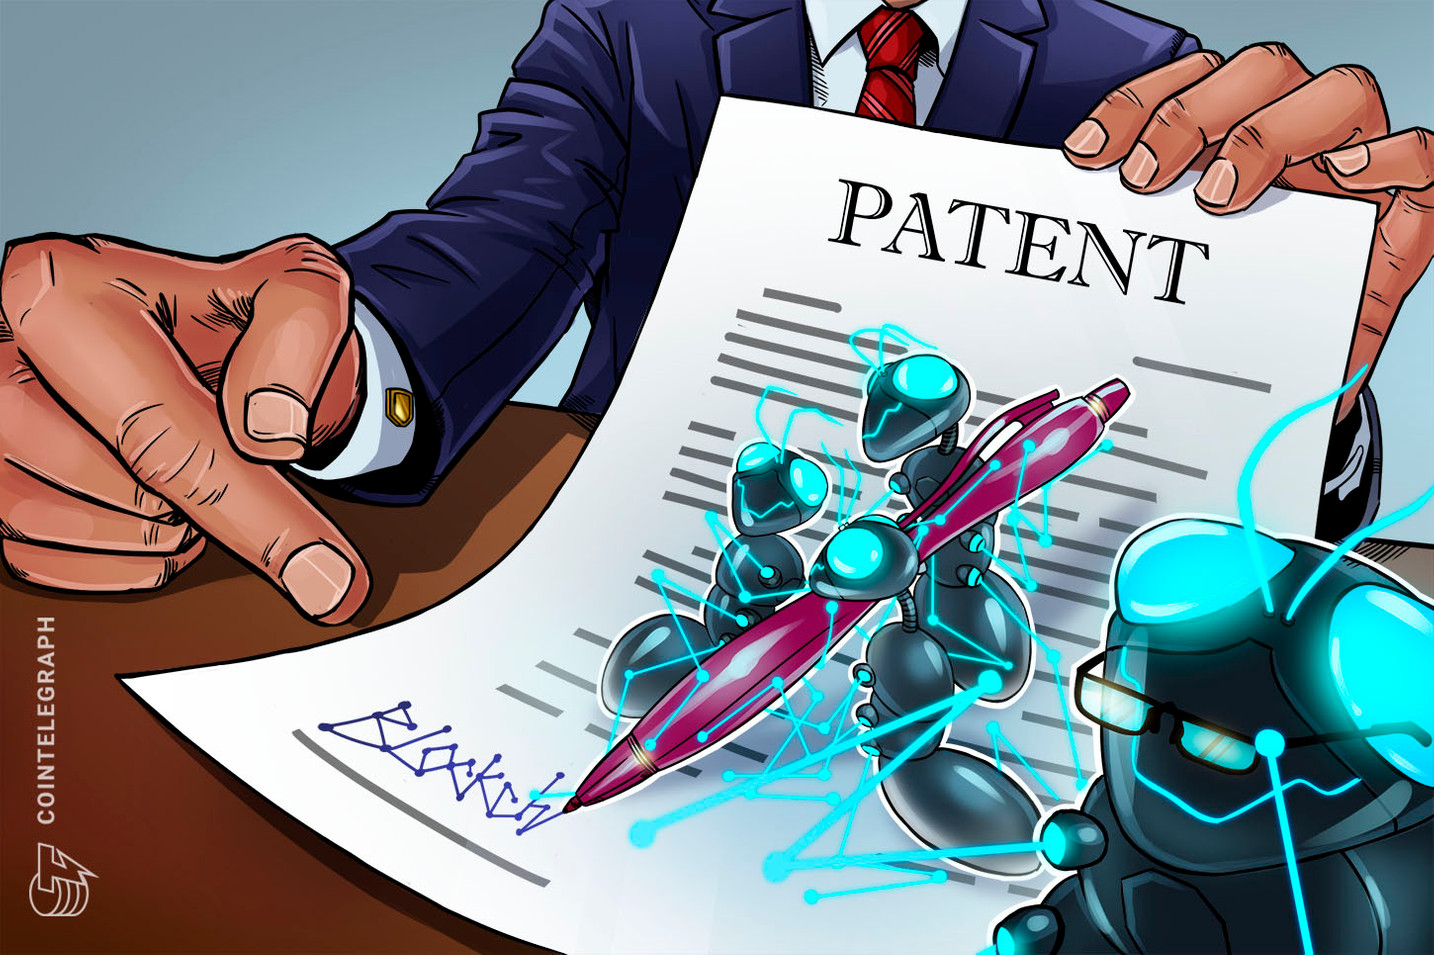 Bank of America Files Patent for Settlement System Citing 'Ripple'